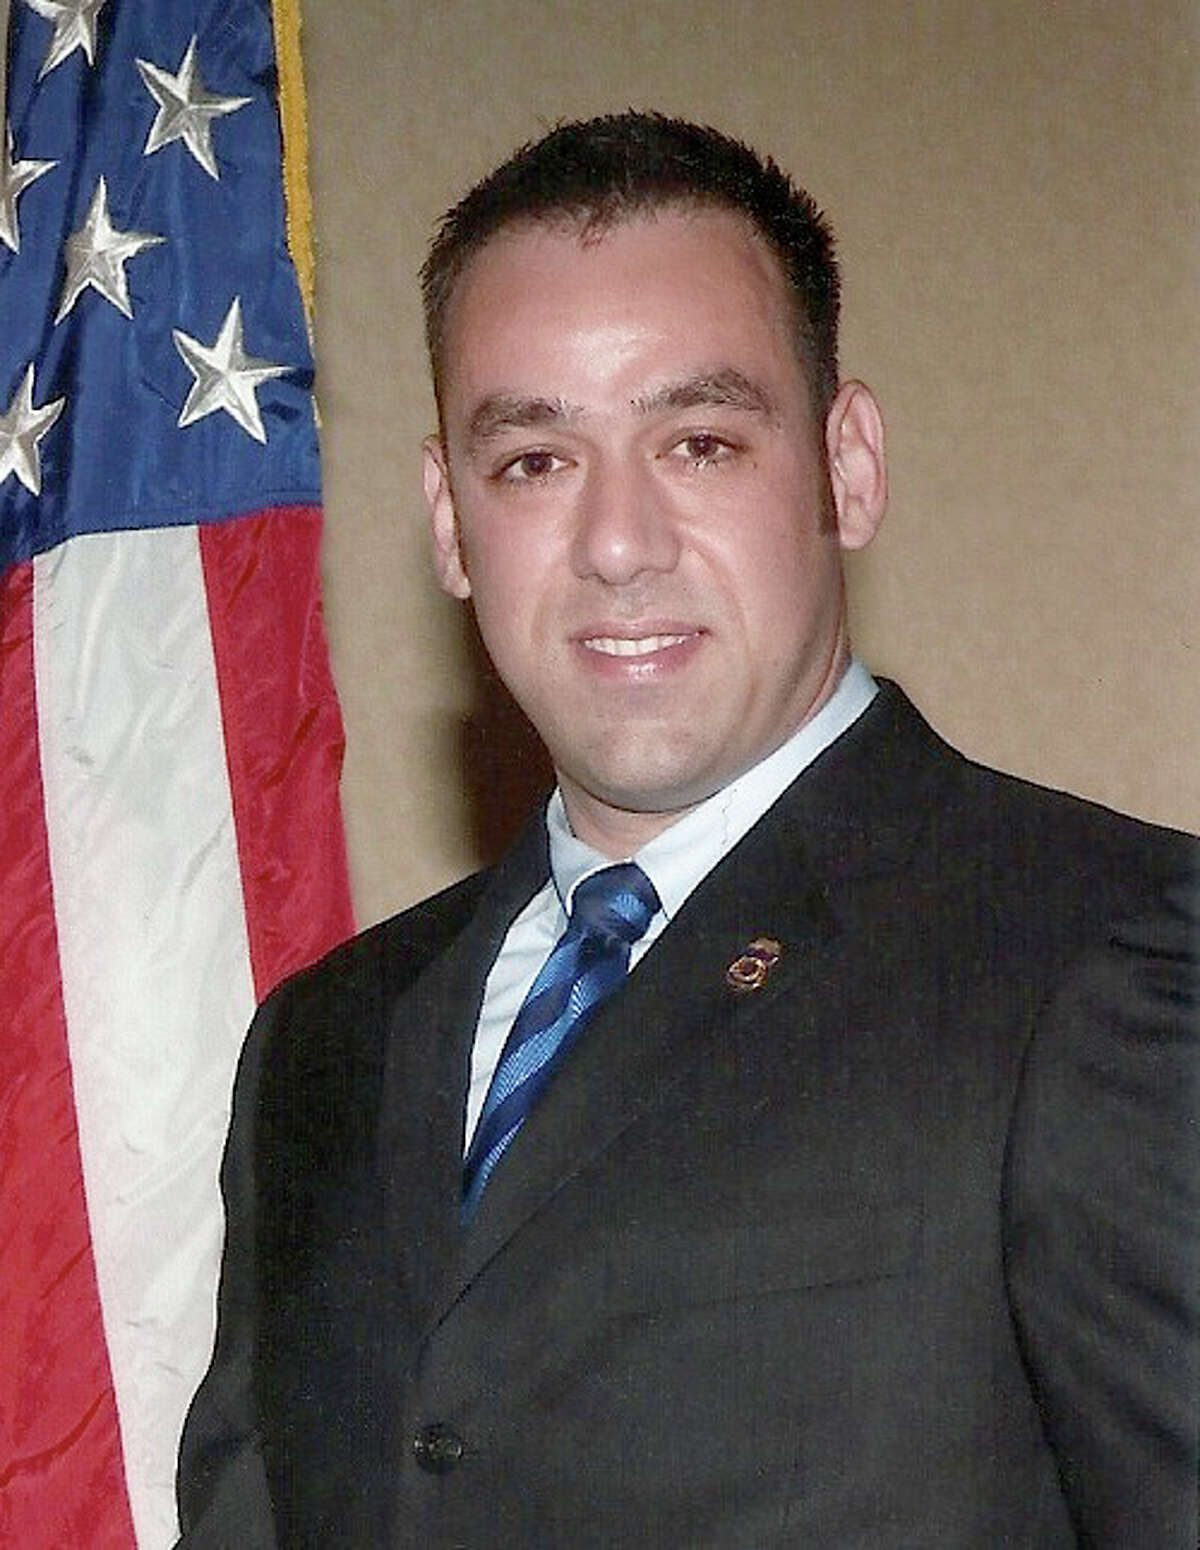 The gunmen attempted to drag Immigration and Customs Enforcement agent Jaime Zapata from the armored SUV.